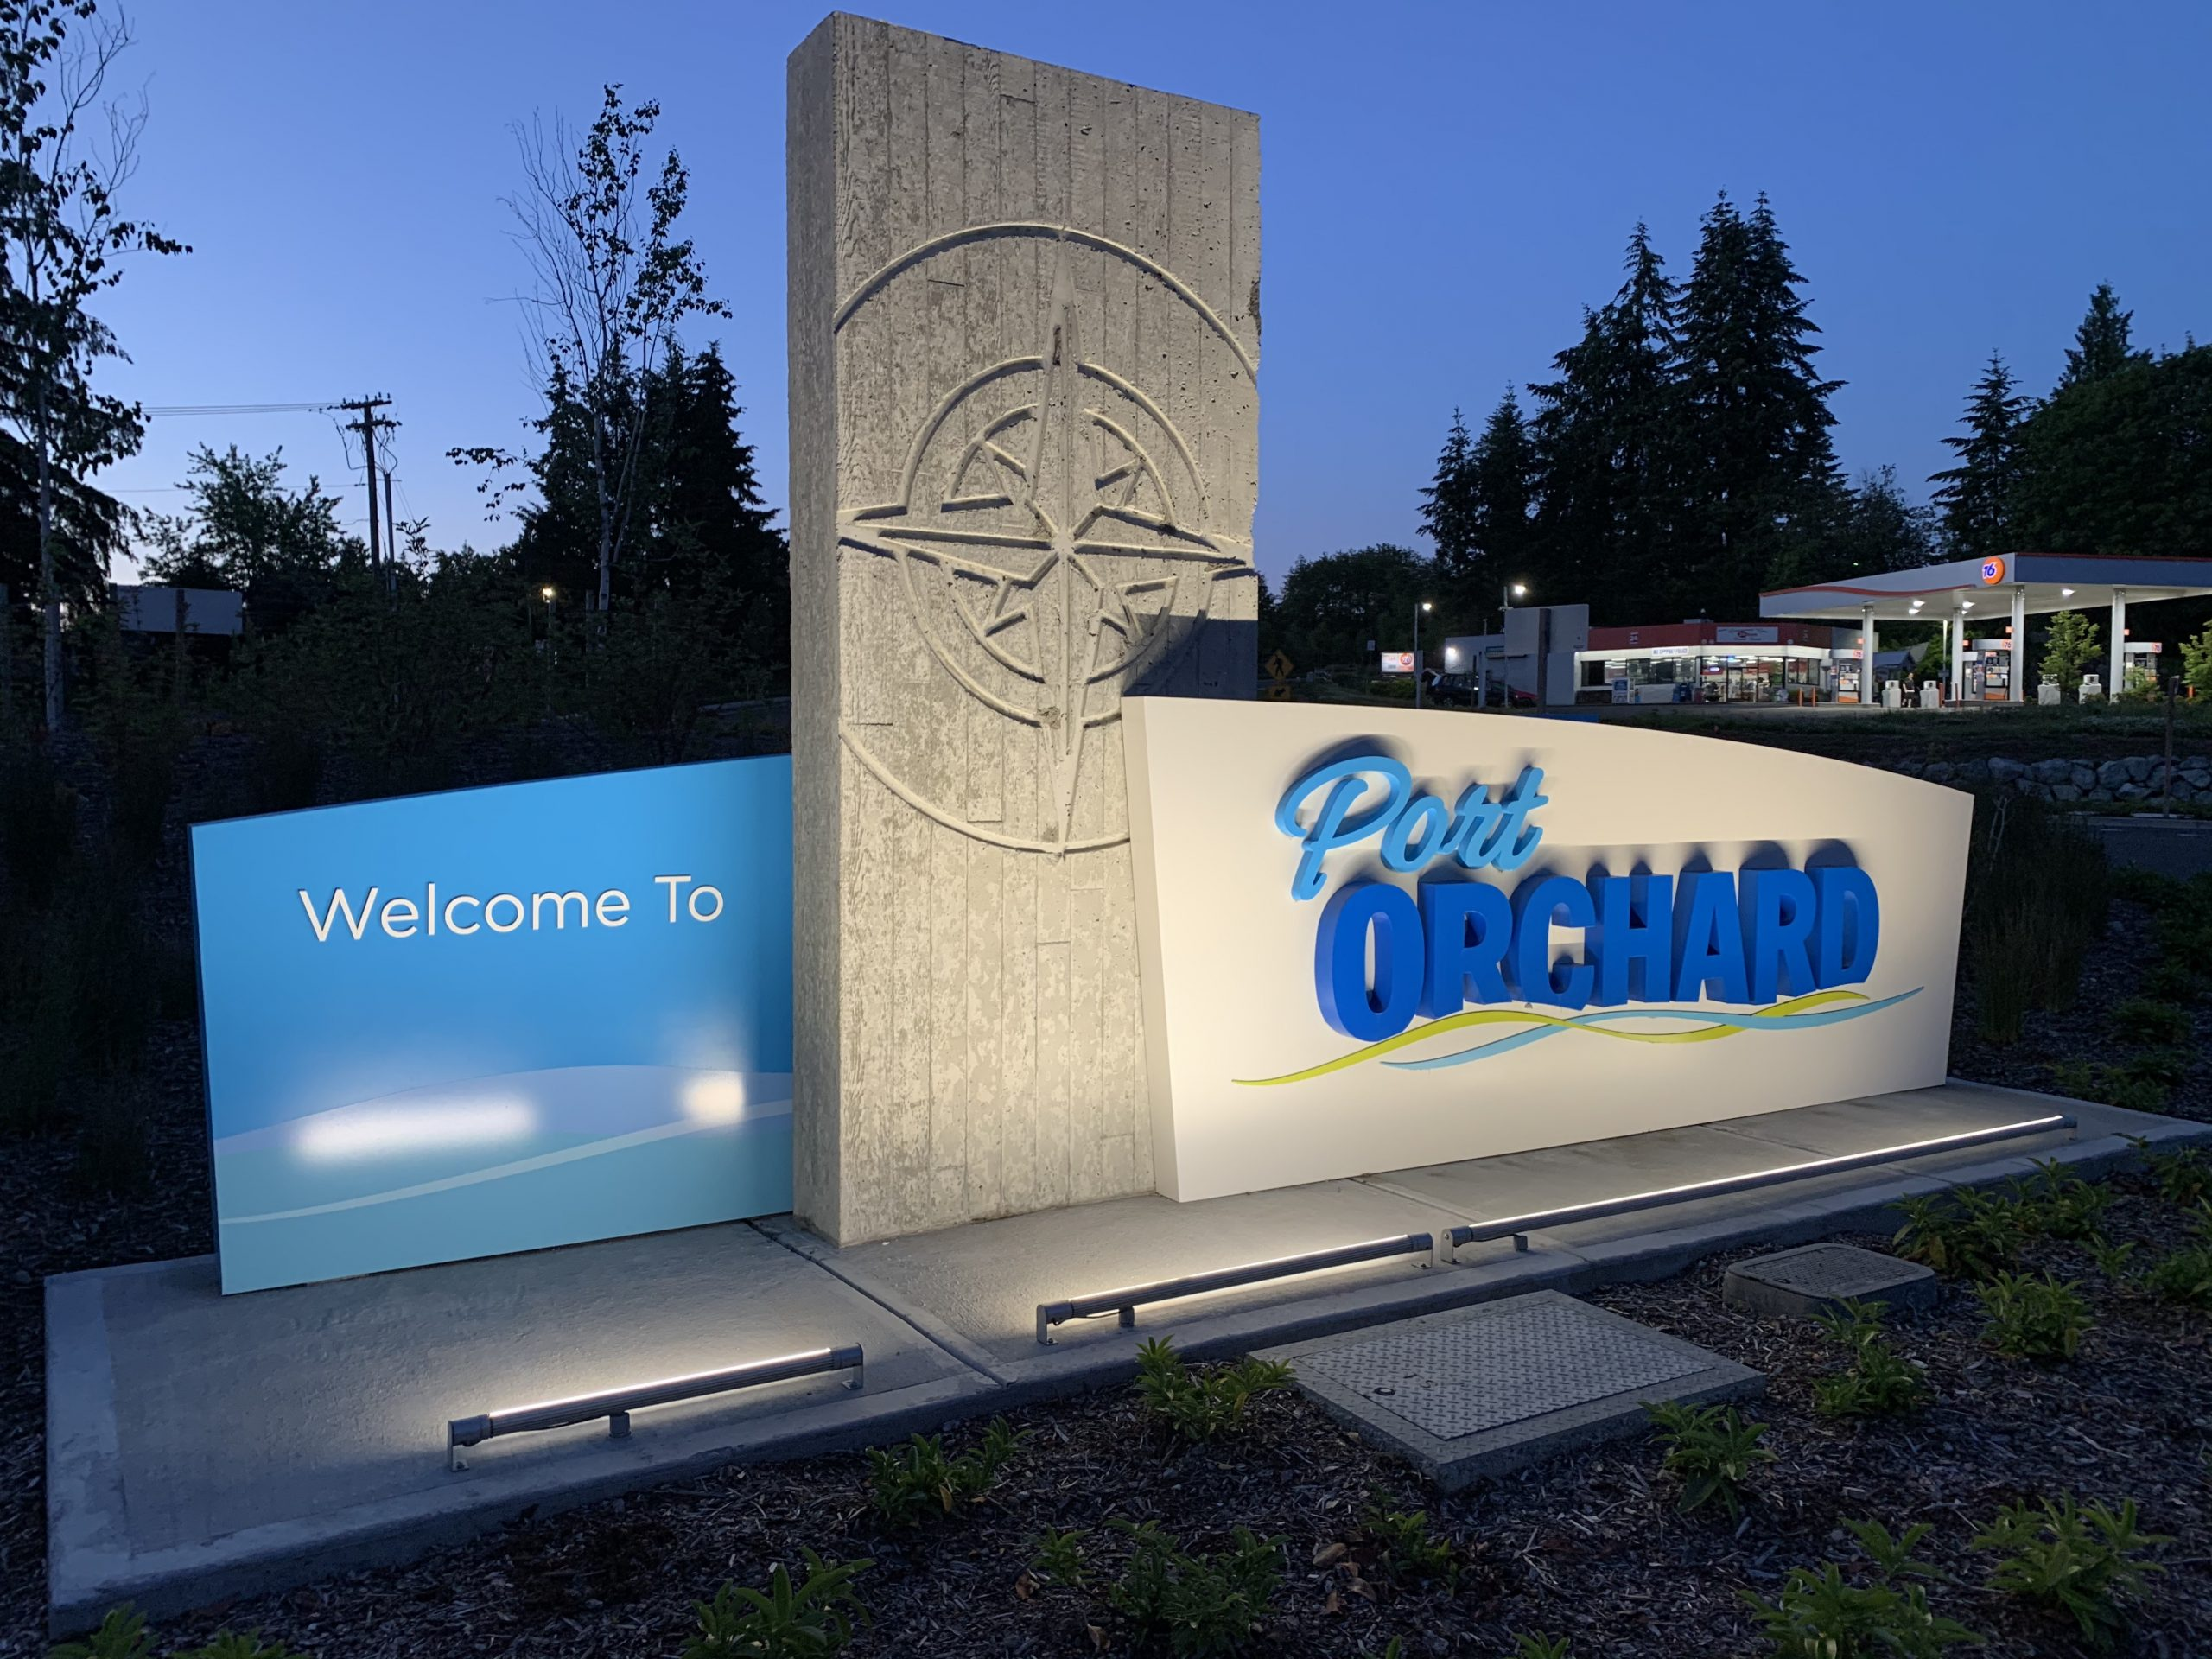 Welcome to Port Orchard sign